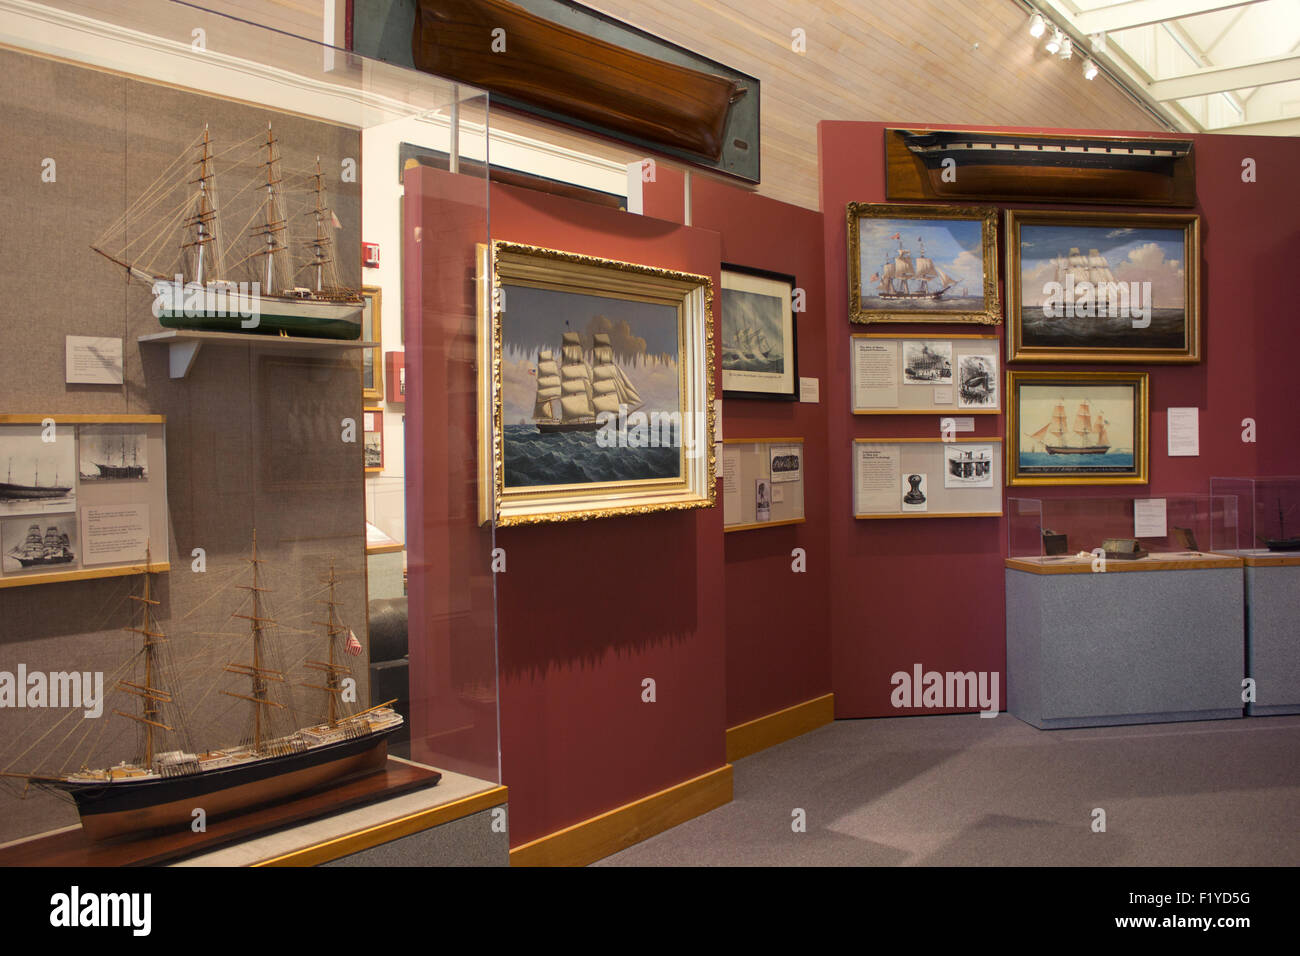 Maine Maritime Museum featuring the history of ship building, wooden vessels, and their explorations.  Bath, Maine - Stock Image